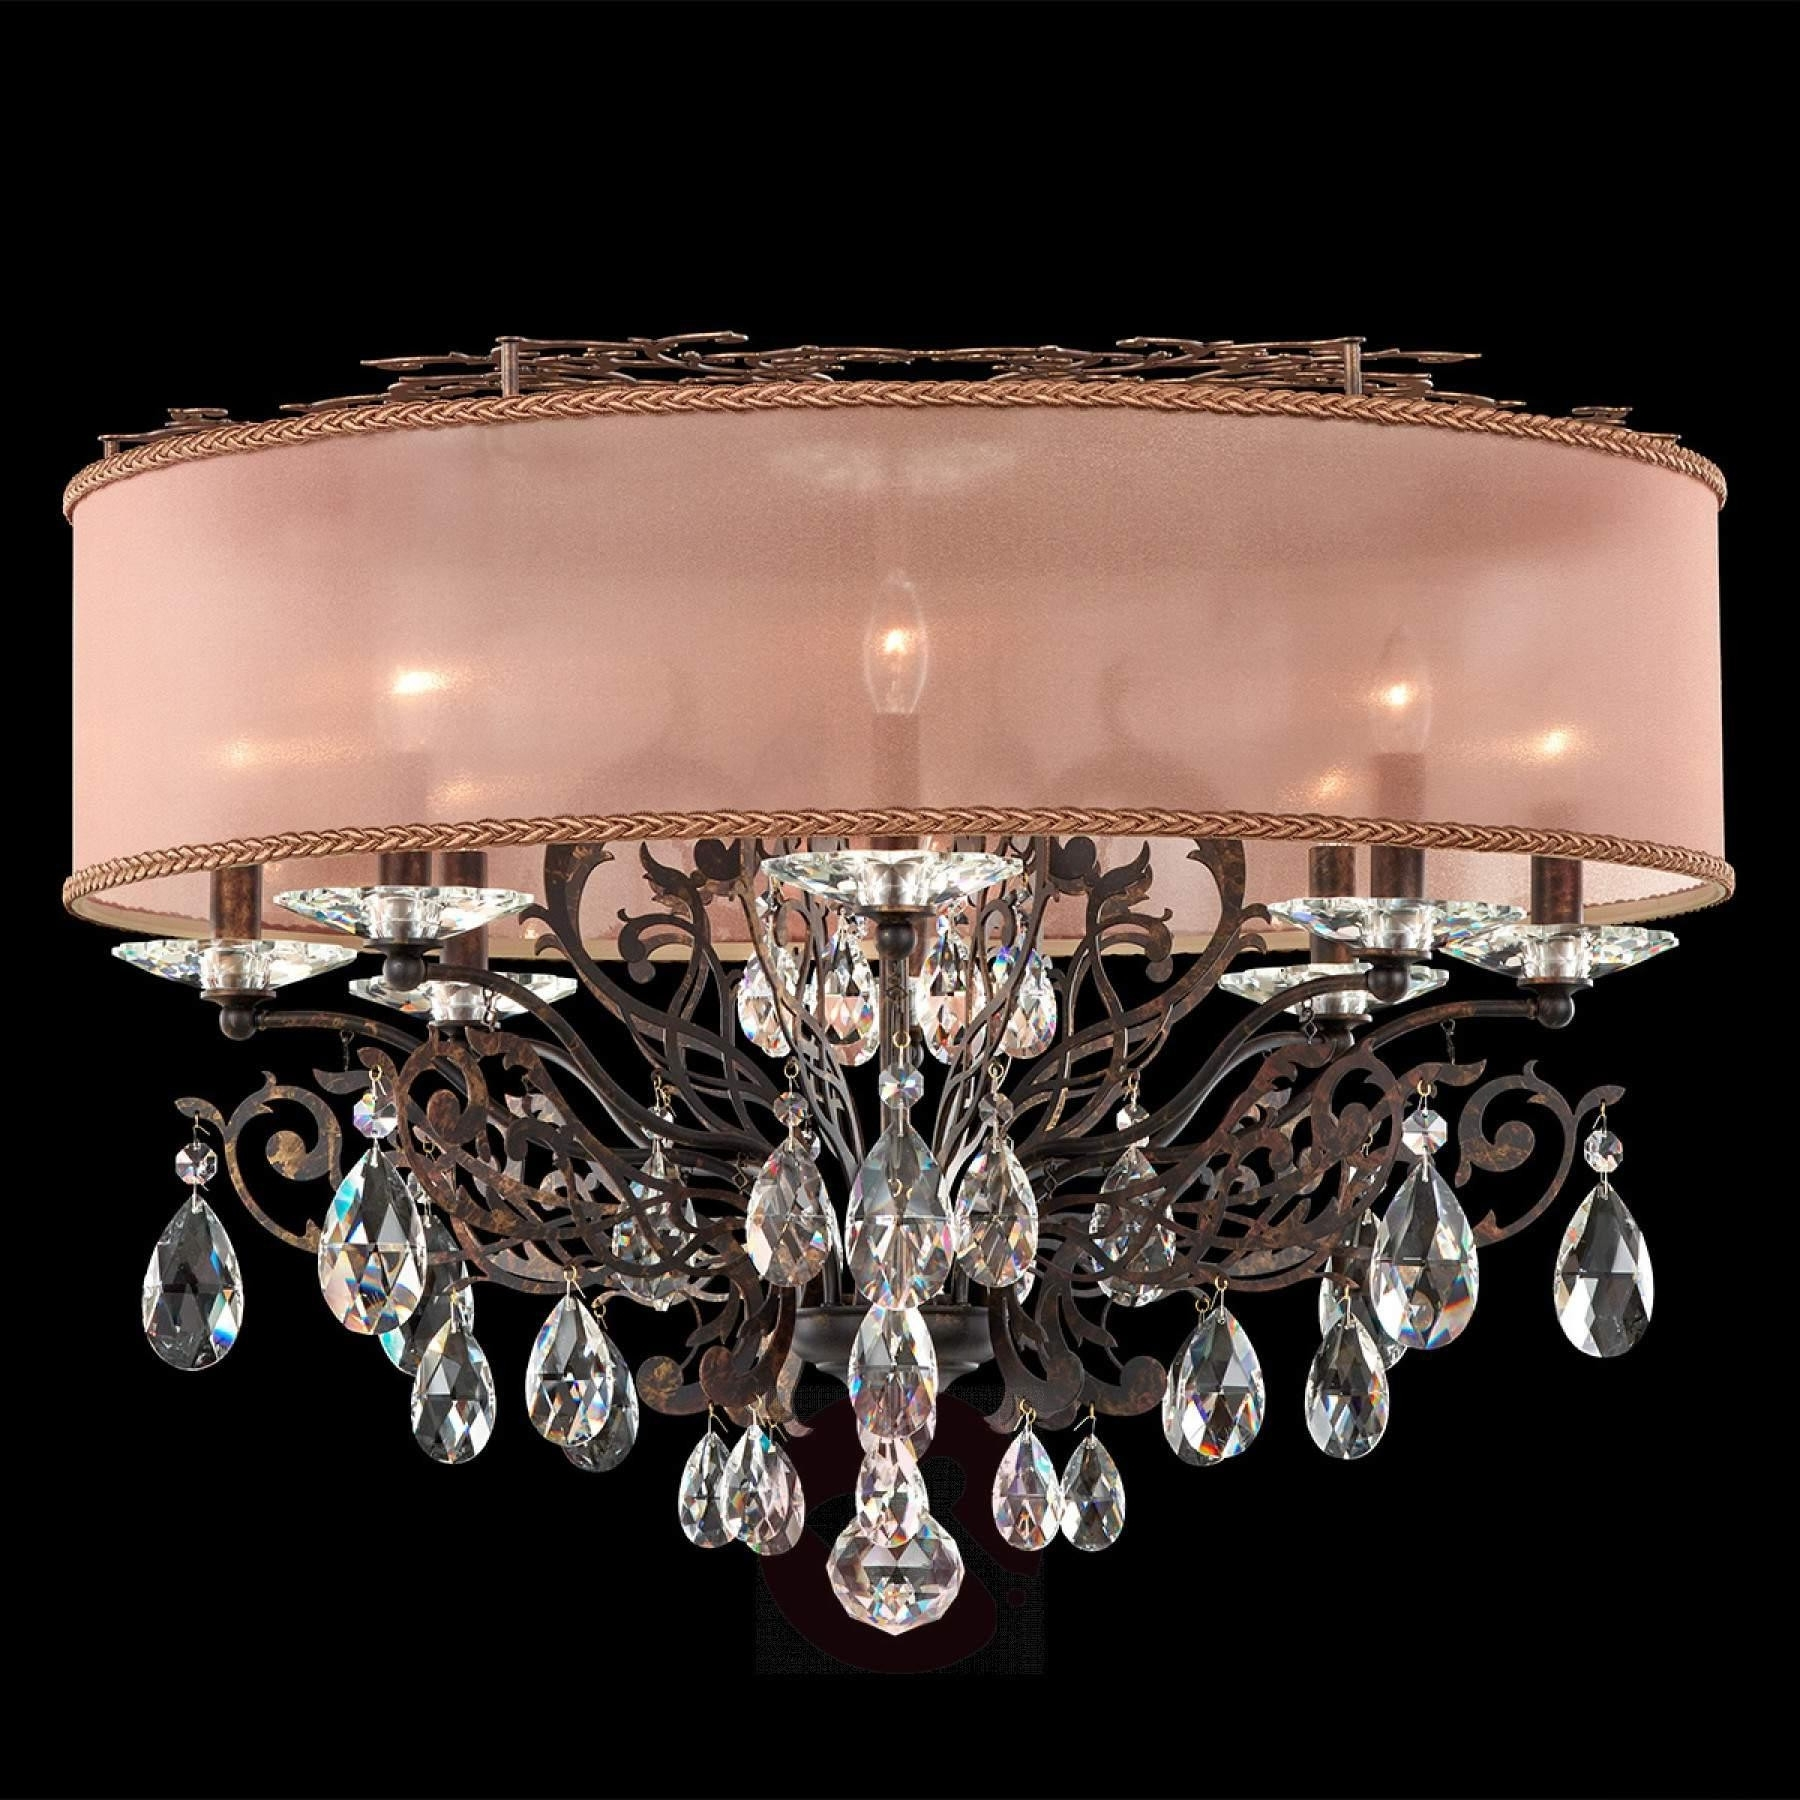 Trendy Chandeliers : Expensive Chandeliers Fresh Chandelier Crystal Modern With Expensive Chandeliers (View 13 of 15)